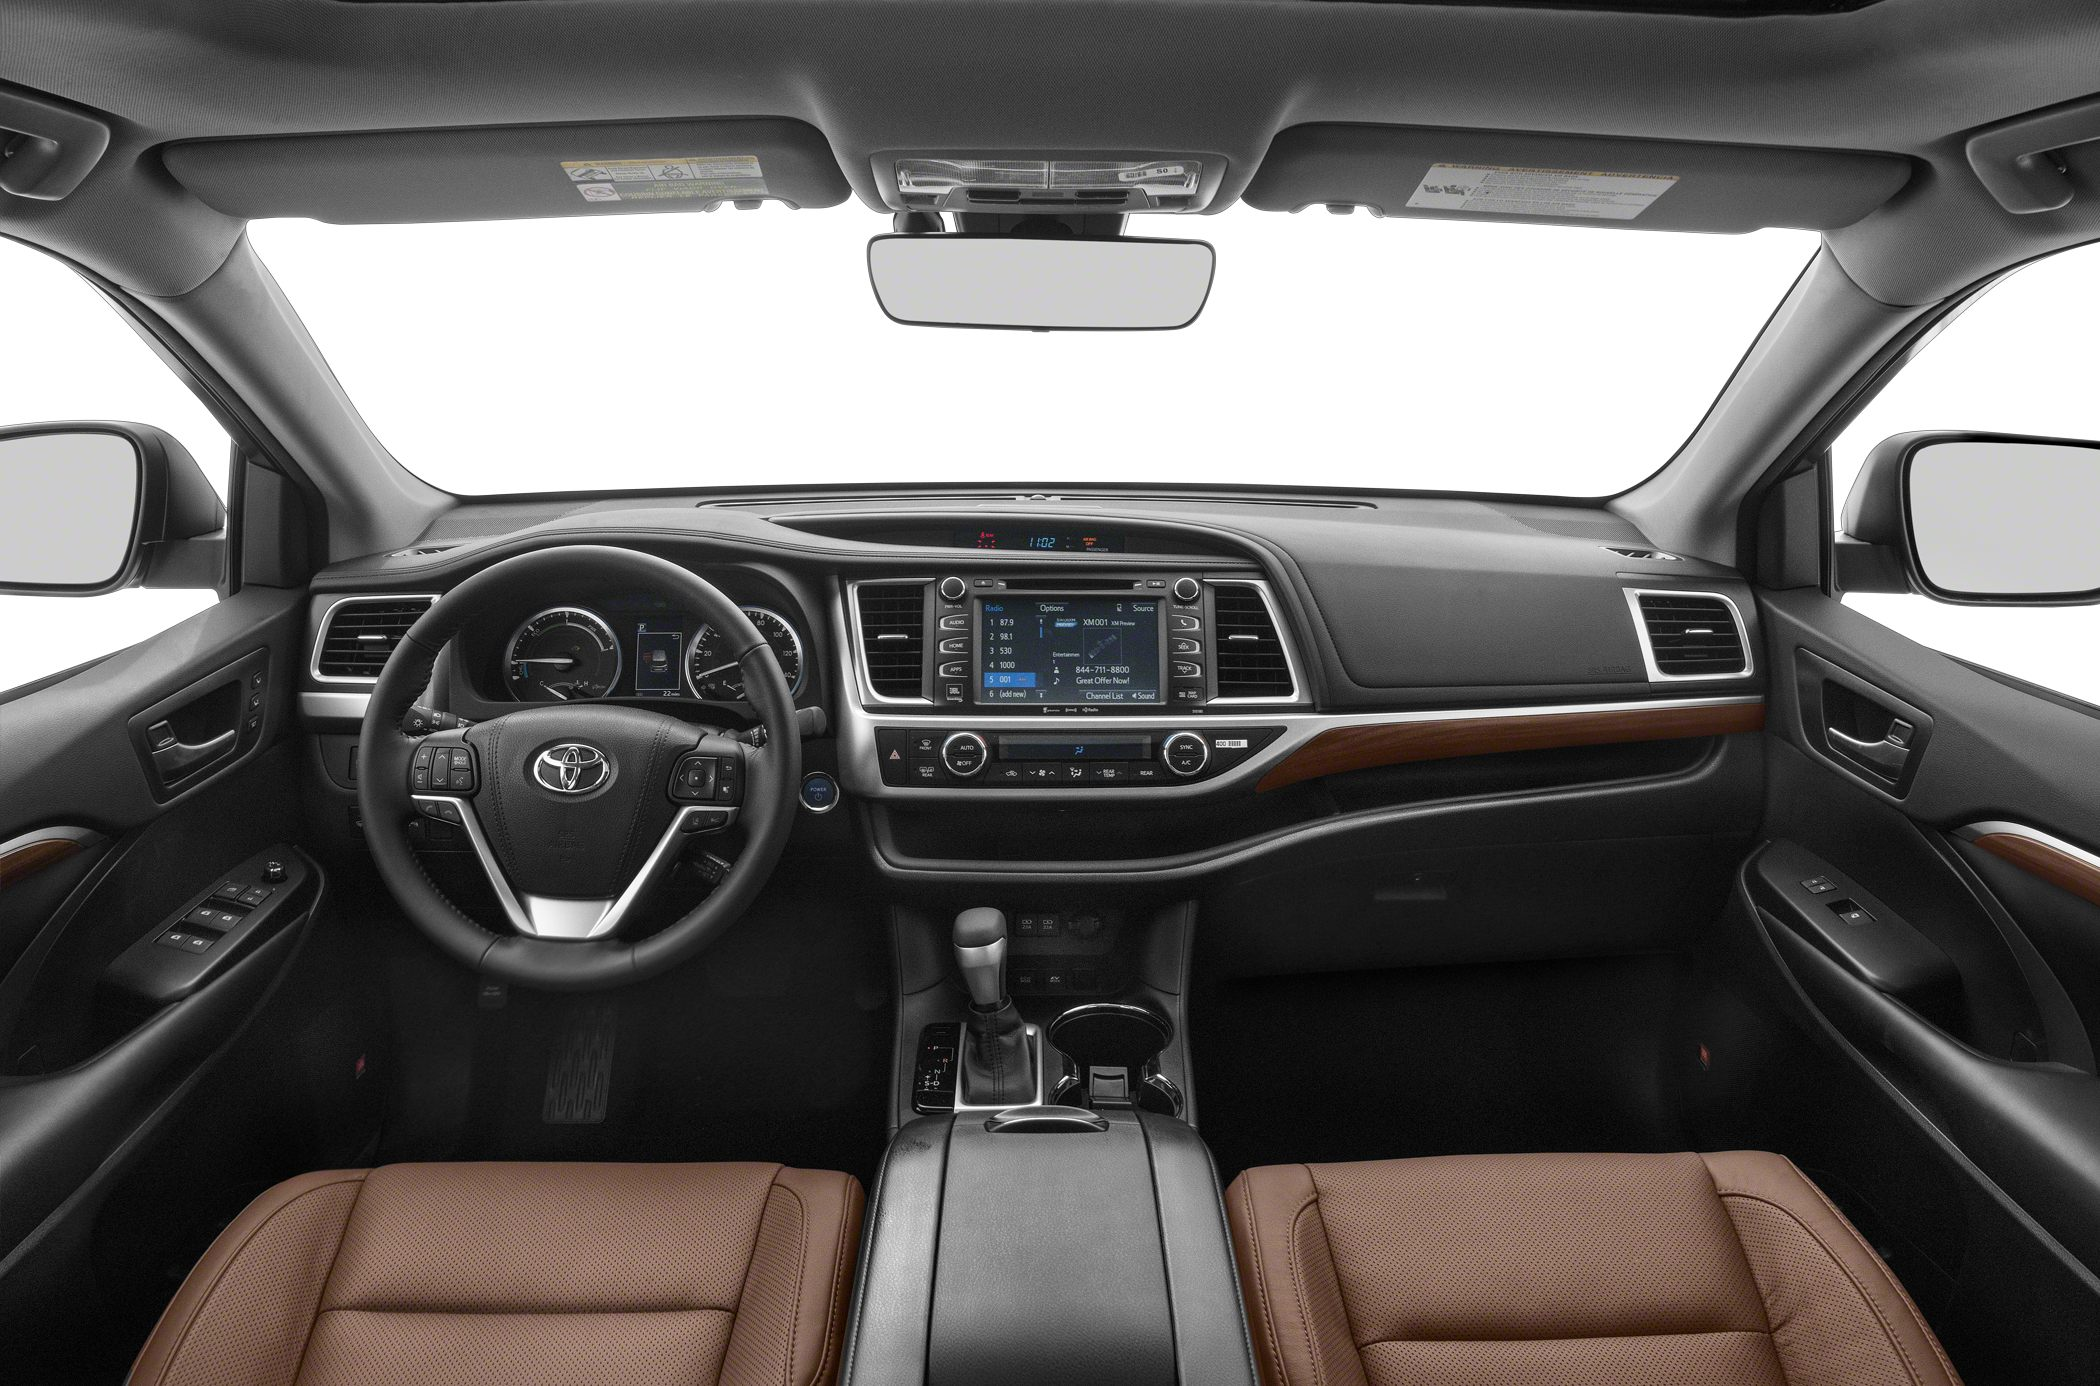 2018 Toyota Highlander Hybrid Pictures & Photos - CarsDirect